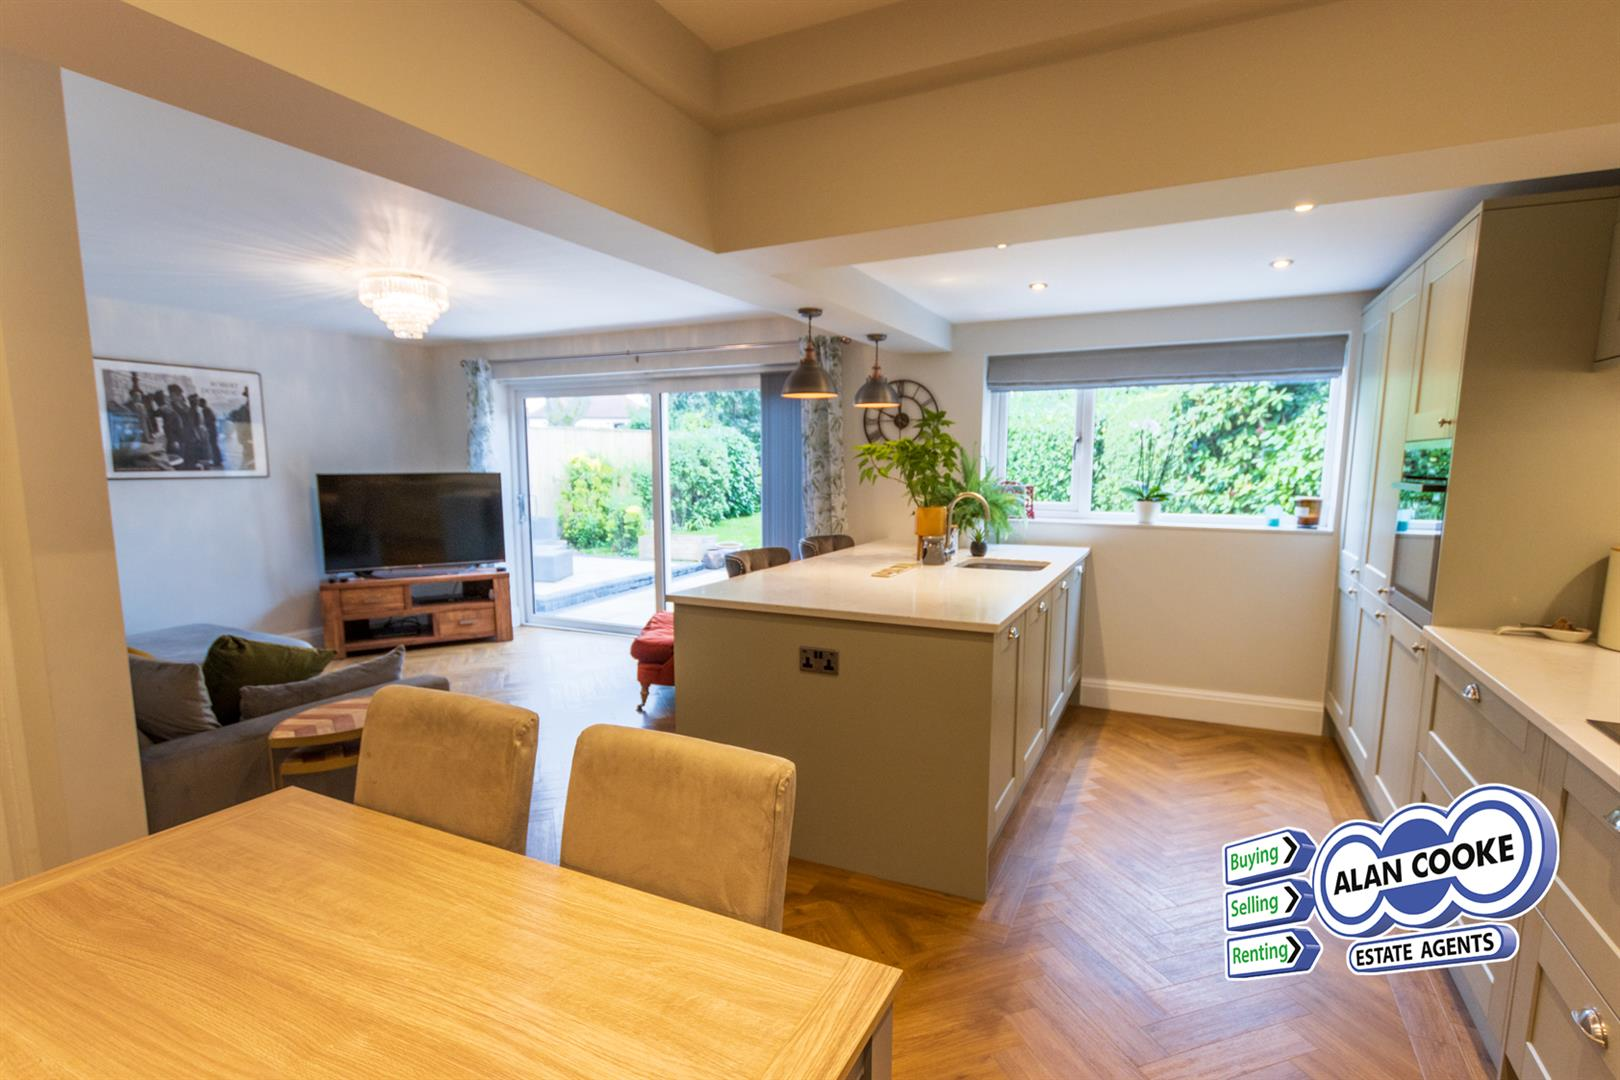 OPEN PLAN BREAKFAST KITCHEN WITH FAMILY ROOM